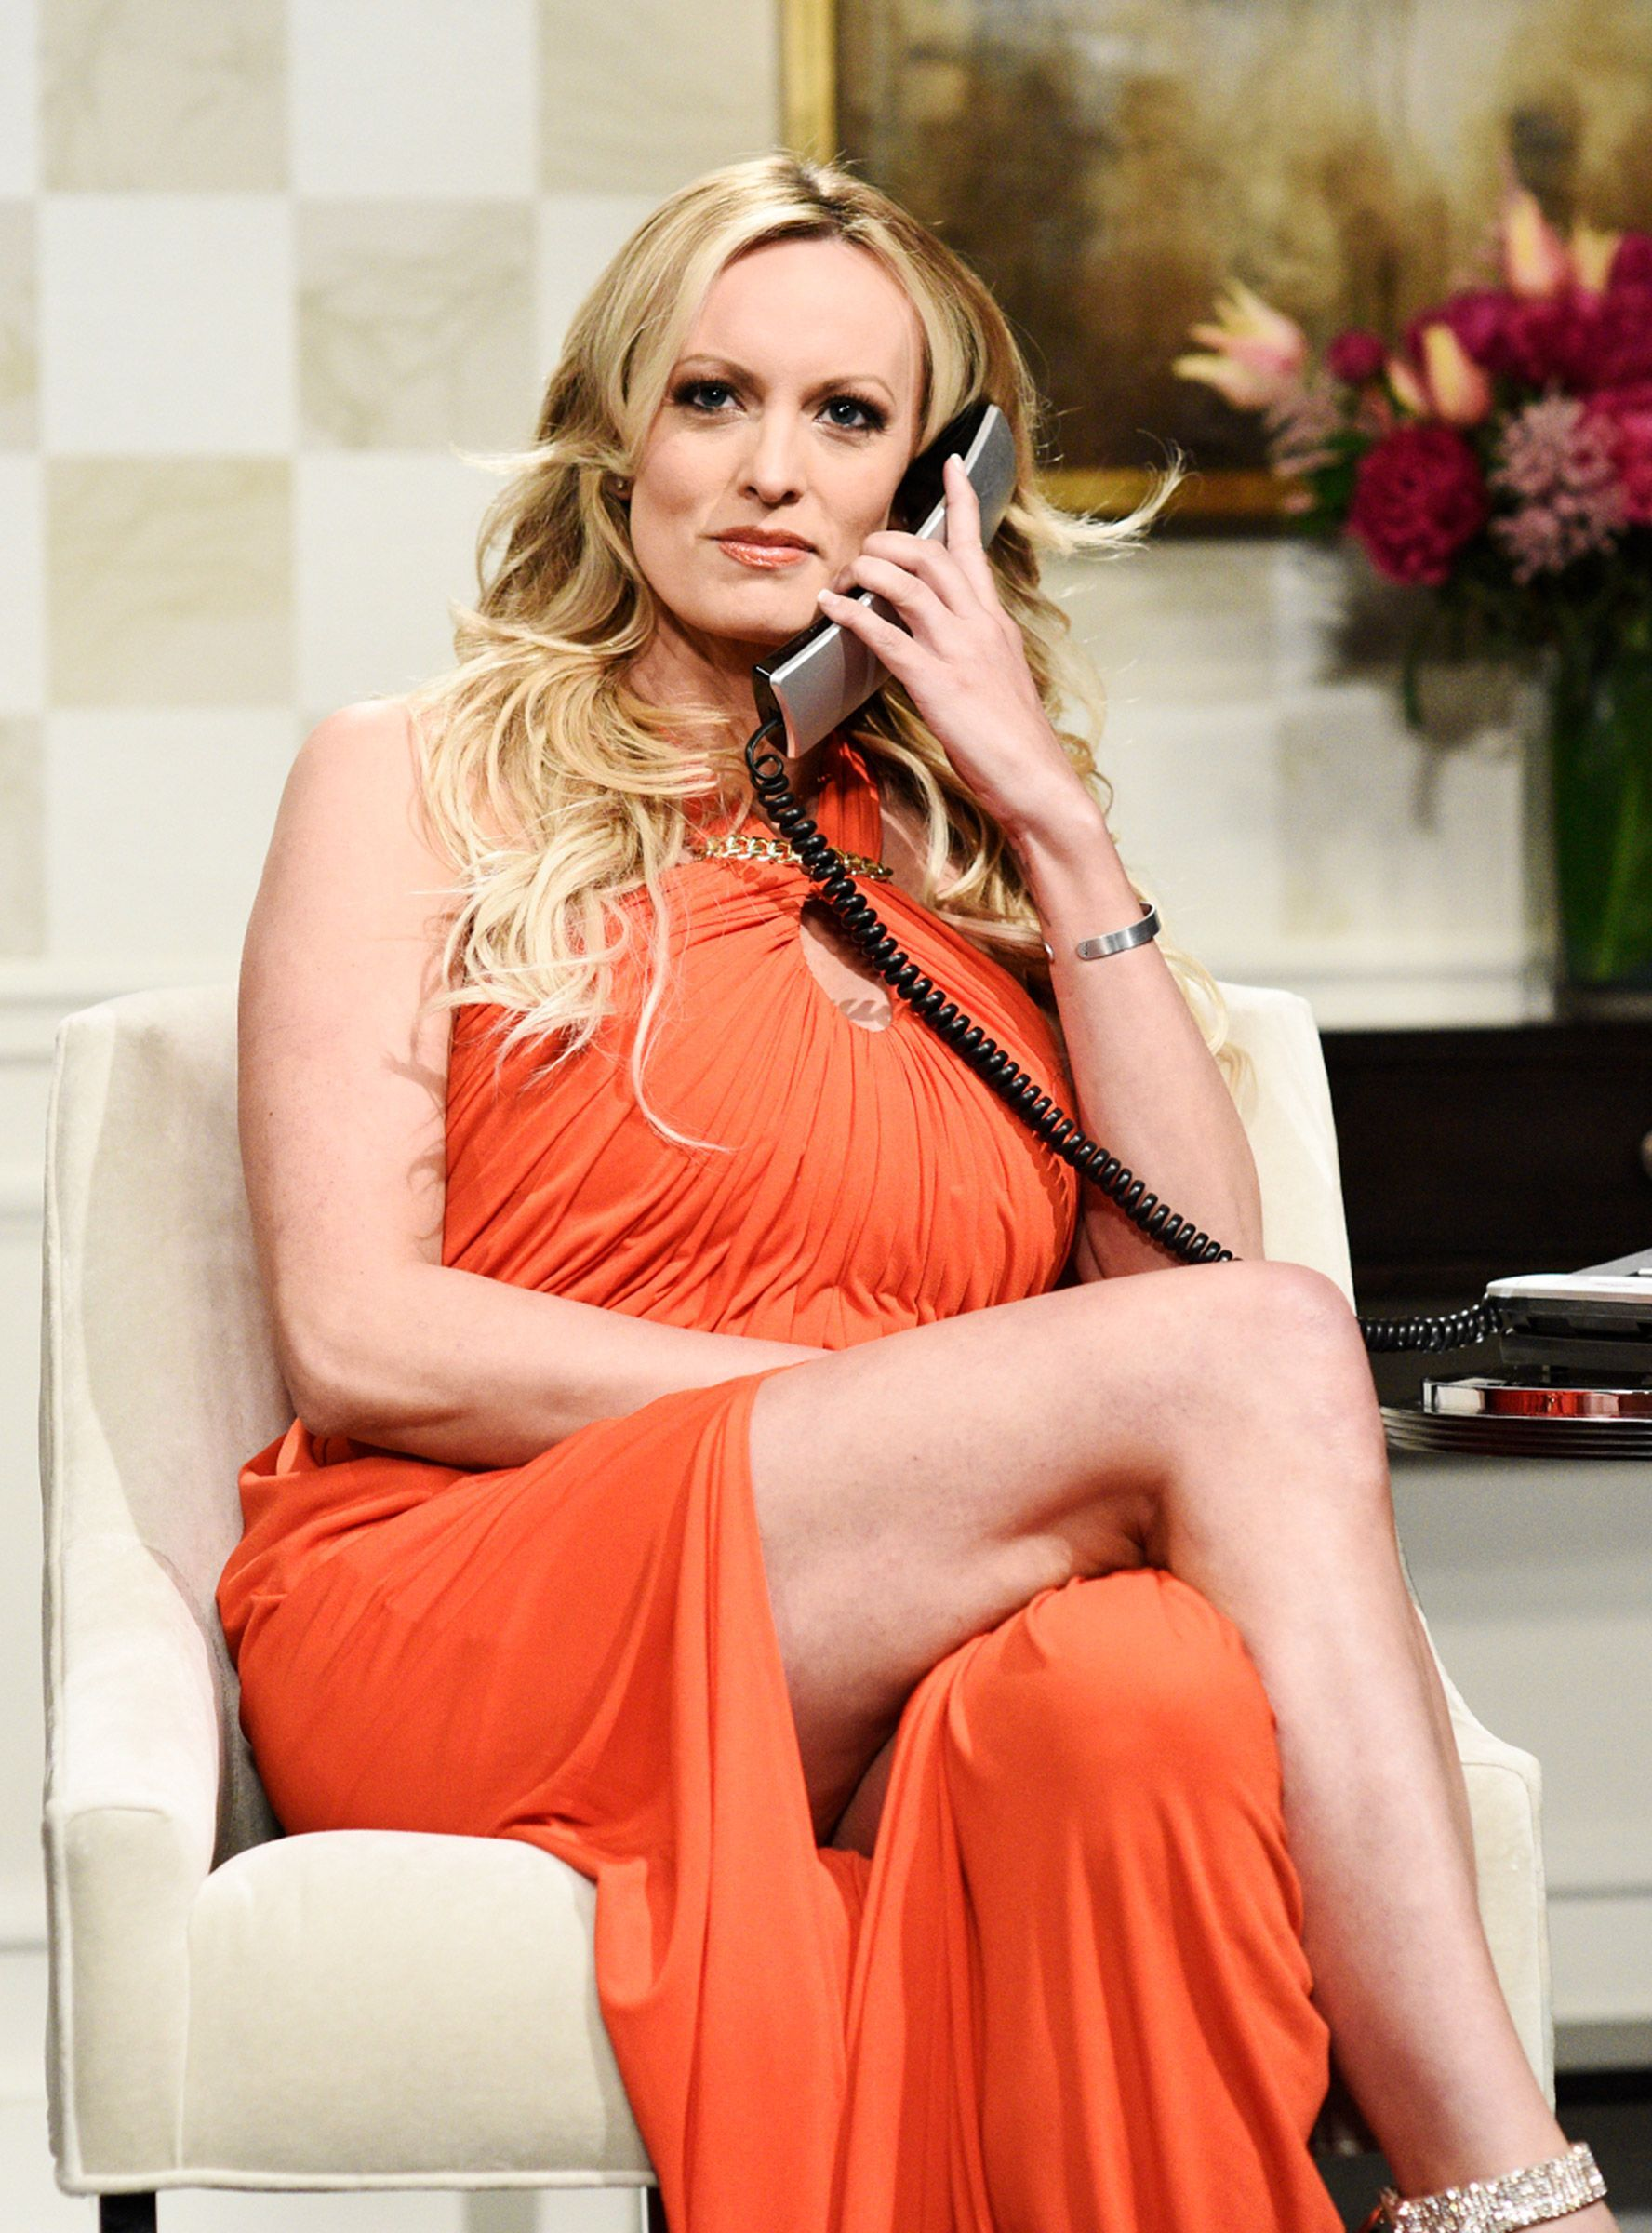 Stormy Daniels Made a Surprise Appearance on SNL and It Was Juicy AF Stormy Daniels Made a Surprise Appearance on SNL and It Was Juicy AF new pictures